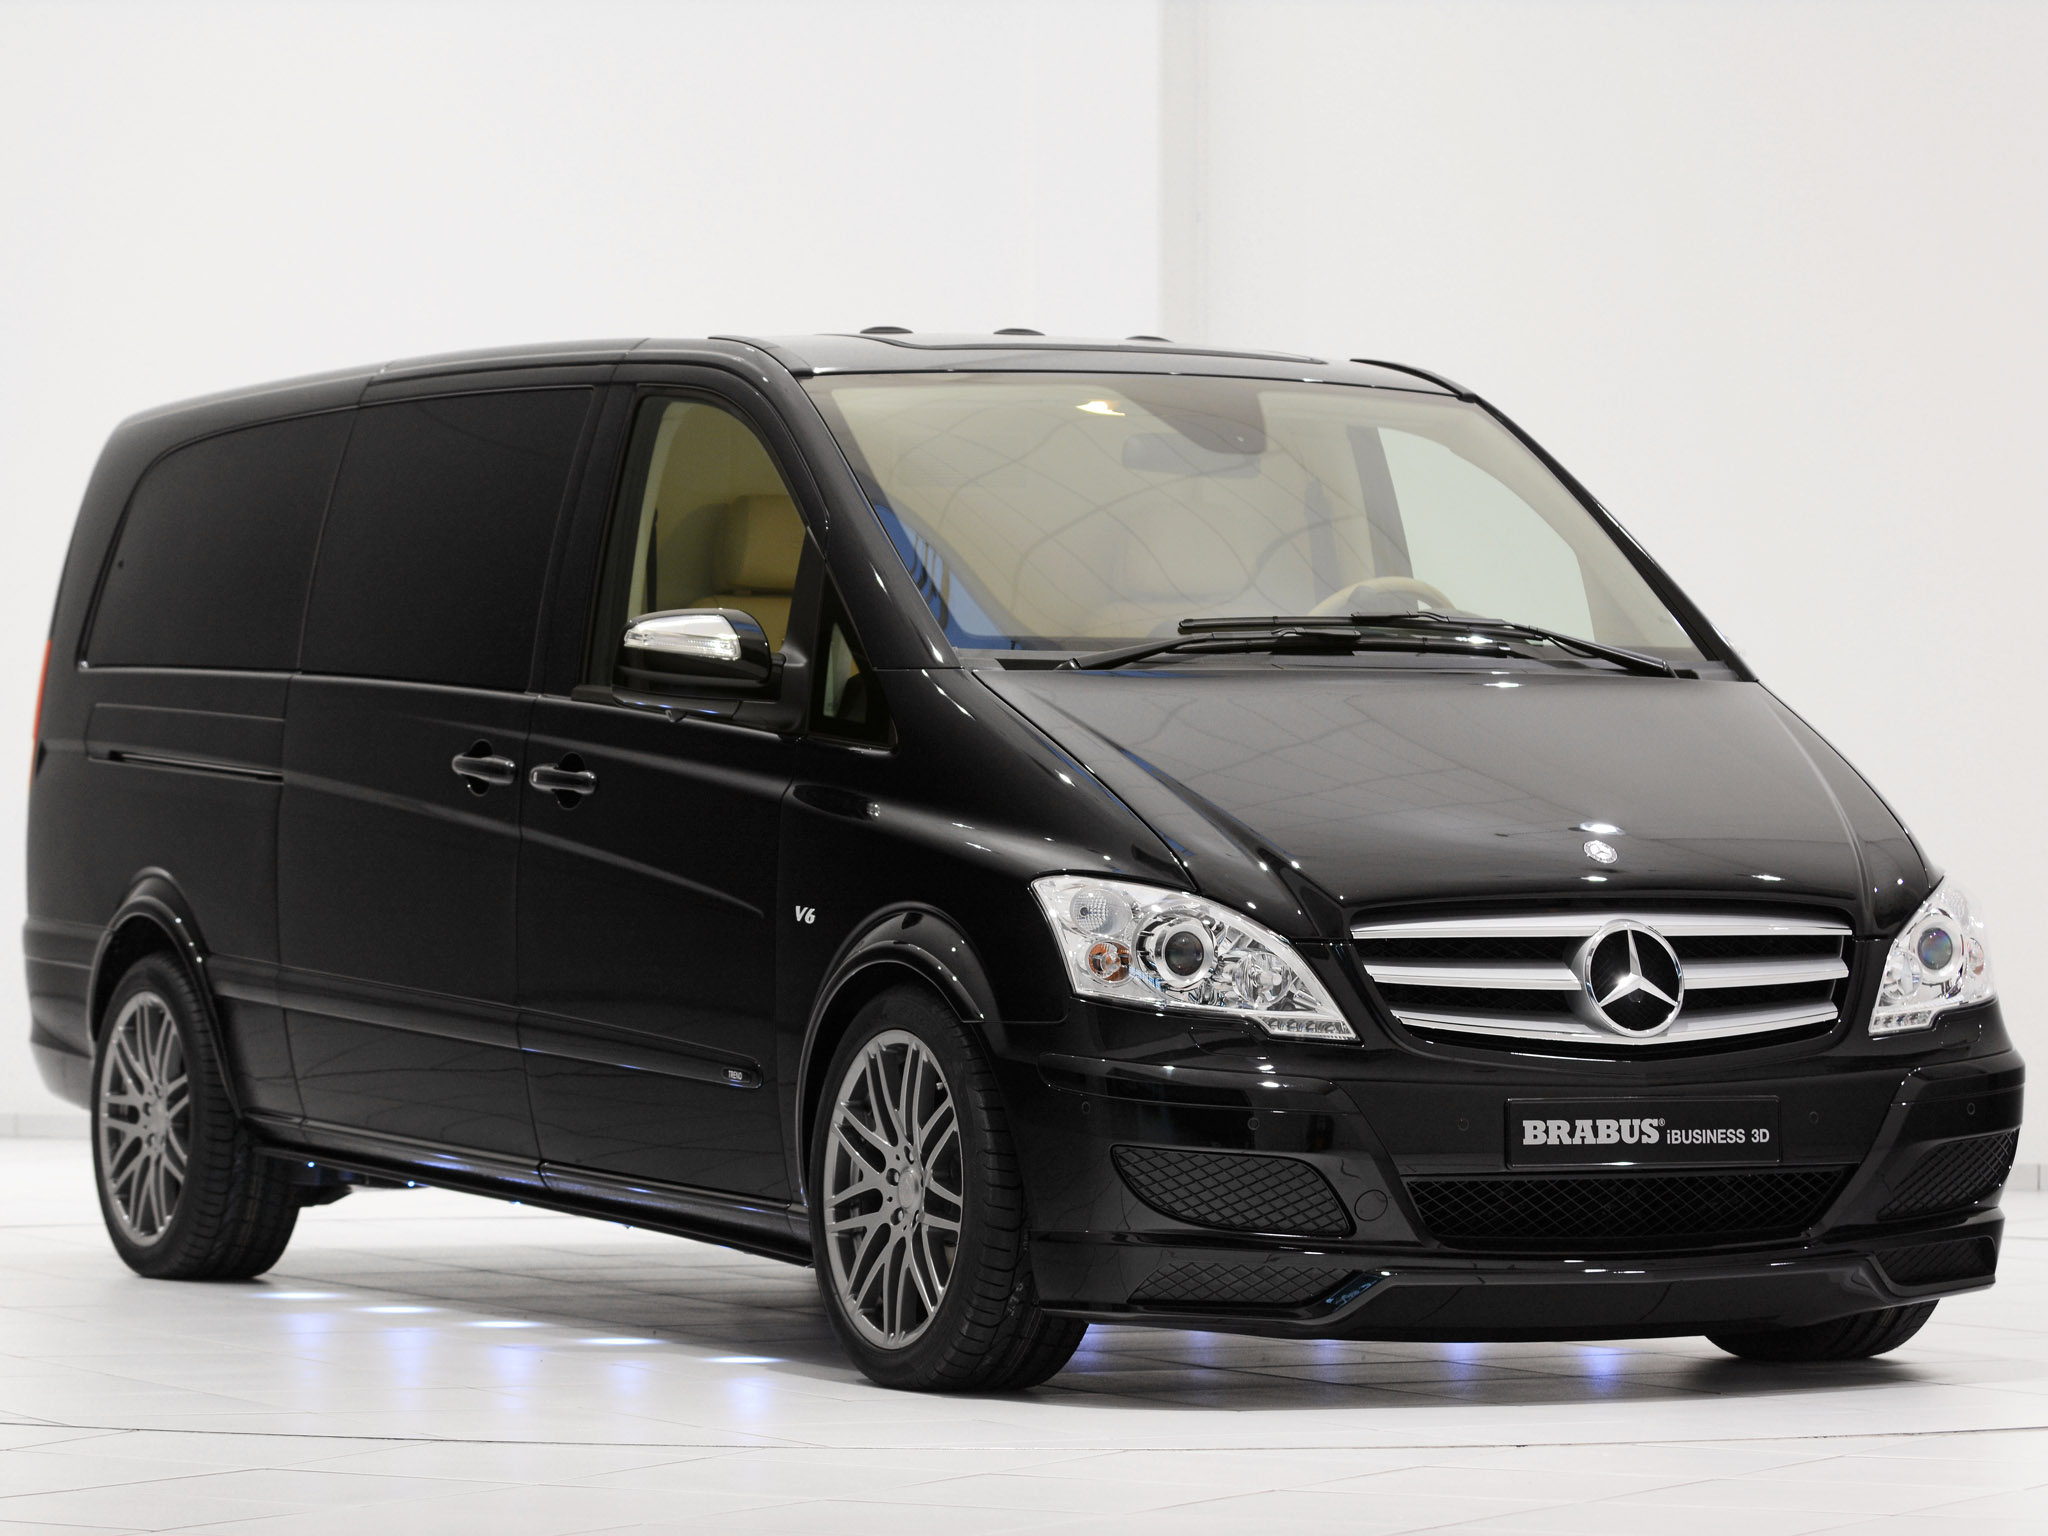 2019 Brabus Mercedes Benz Vaneo photo - 3